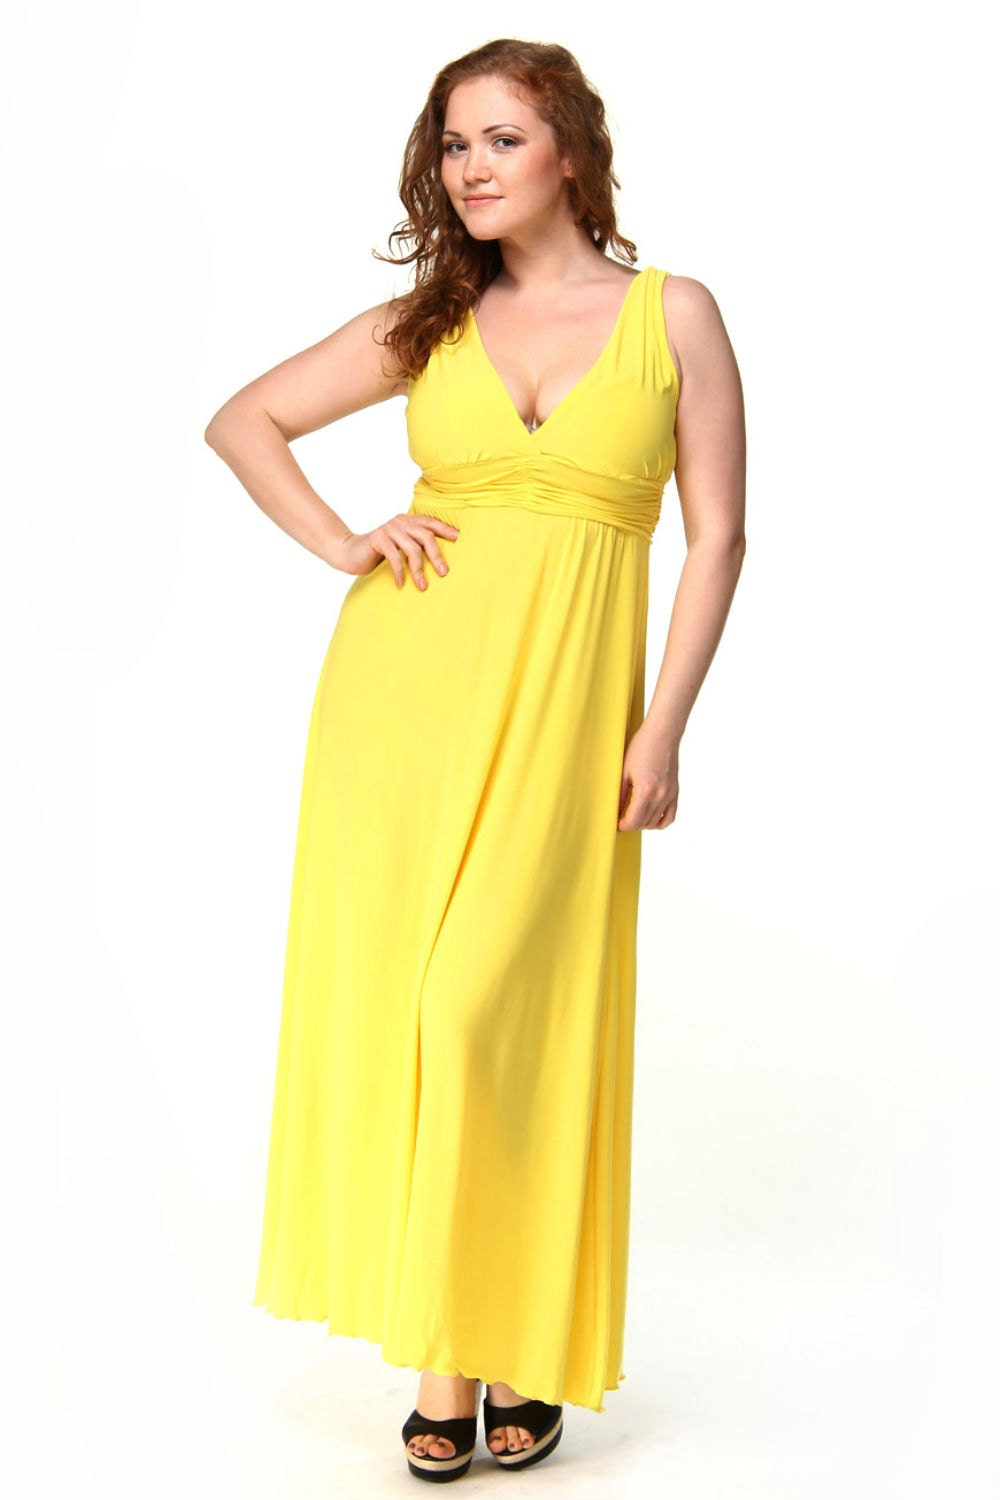 Plus Size Formal Yellow Maxi Dresslong Evening Dress By